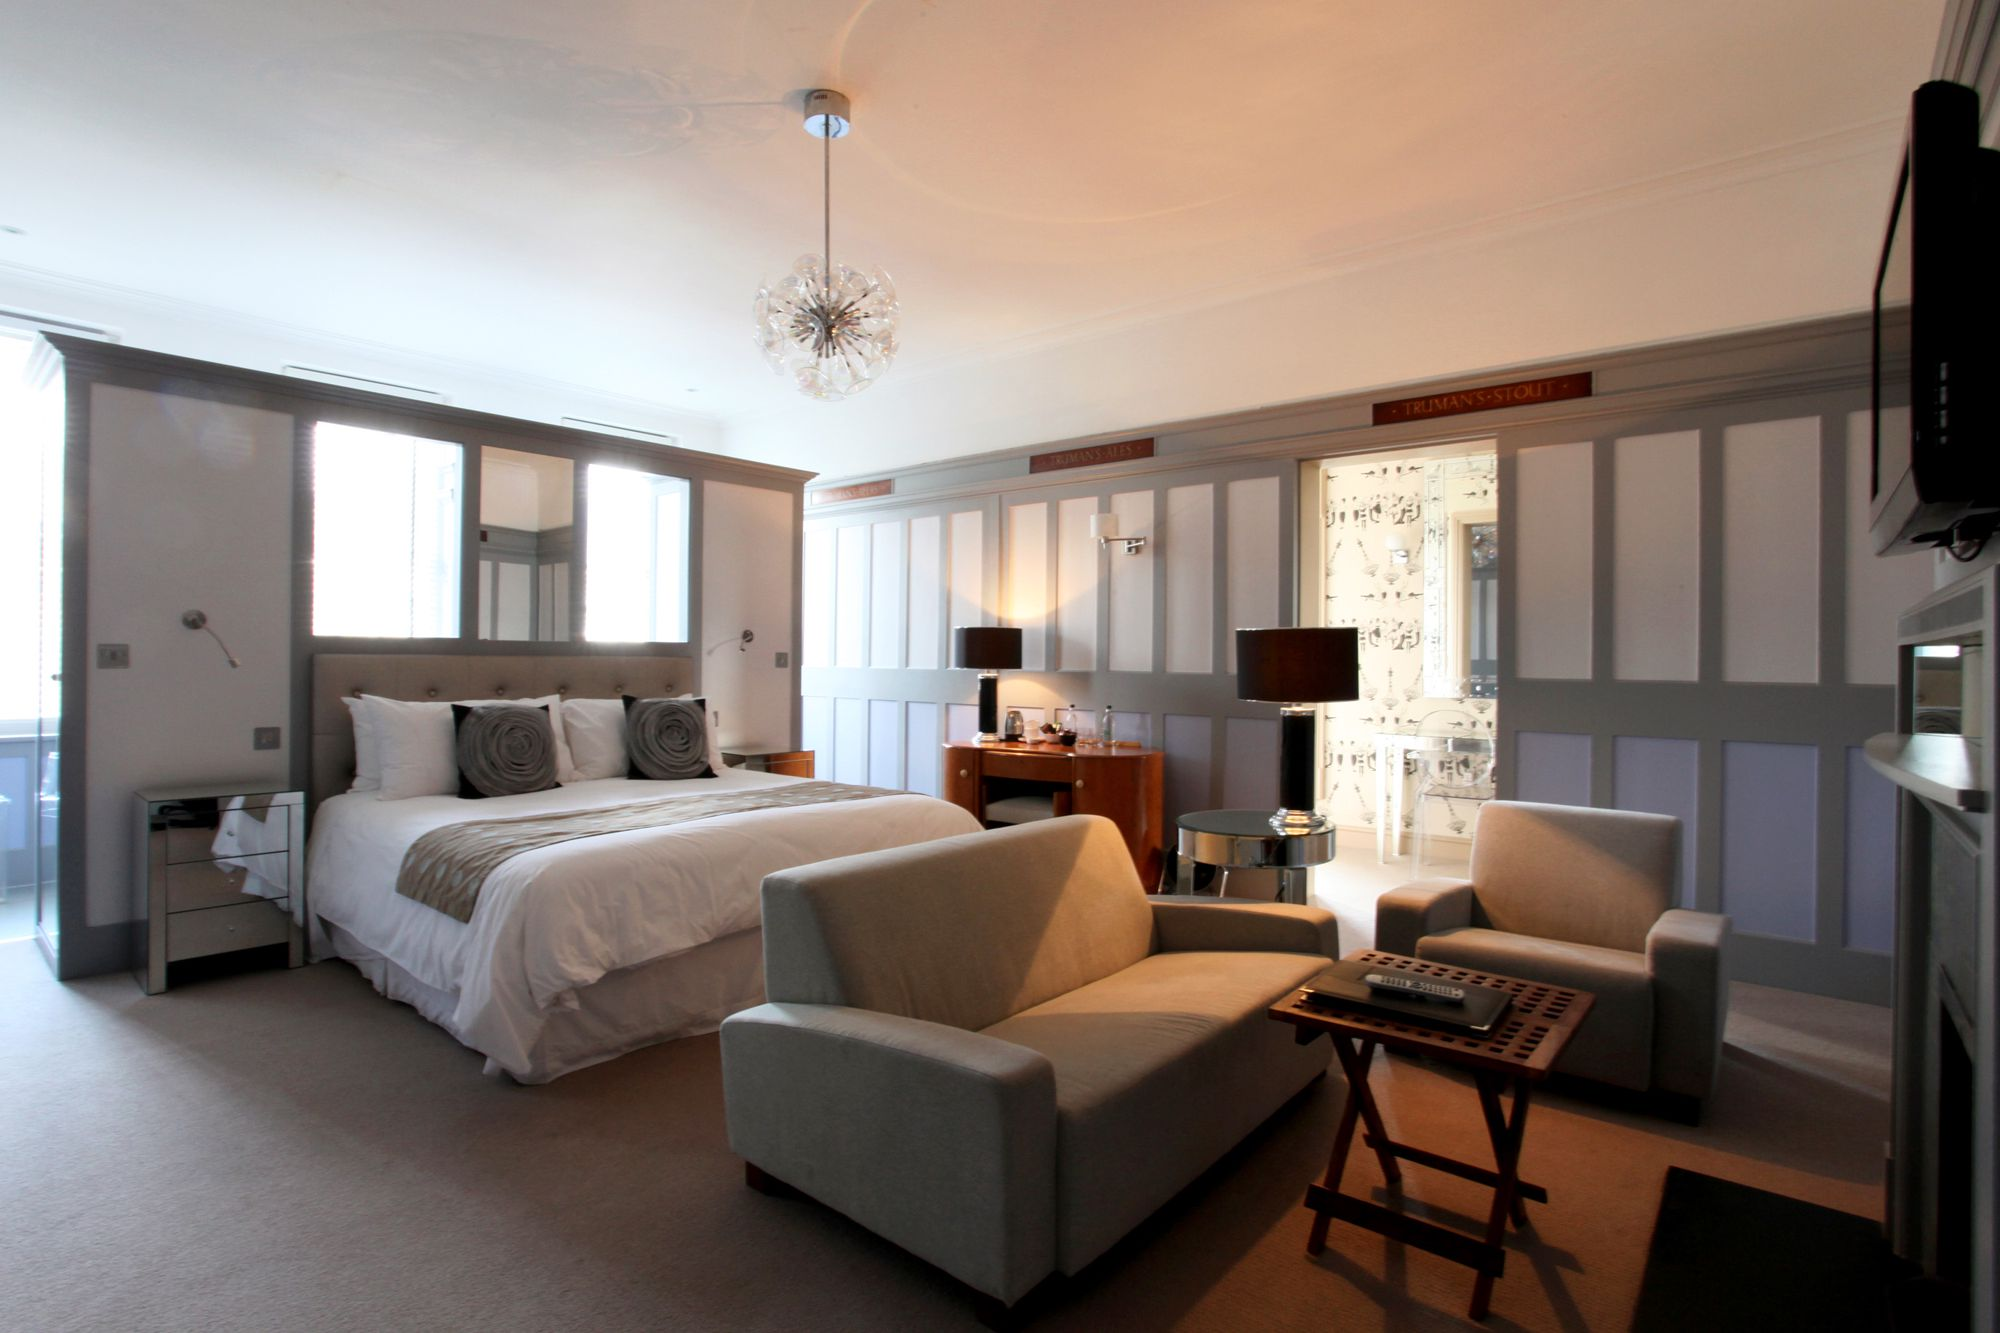 Hotels in Stoke Newington holidays at Cool Places